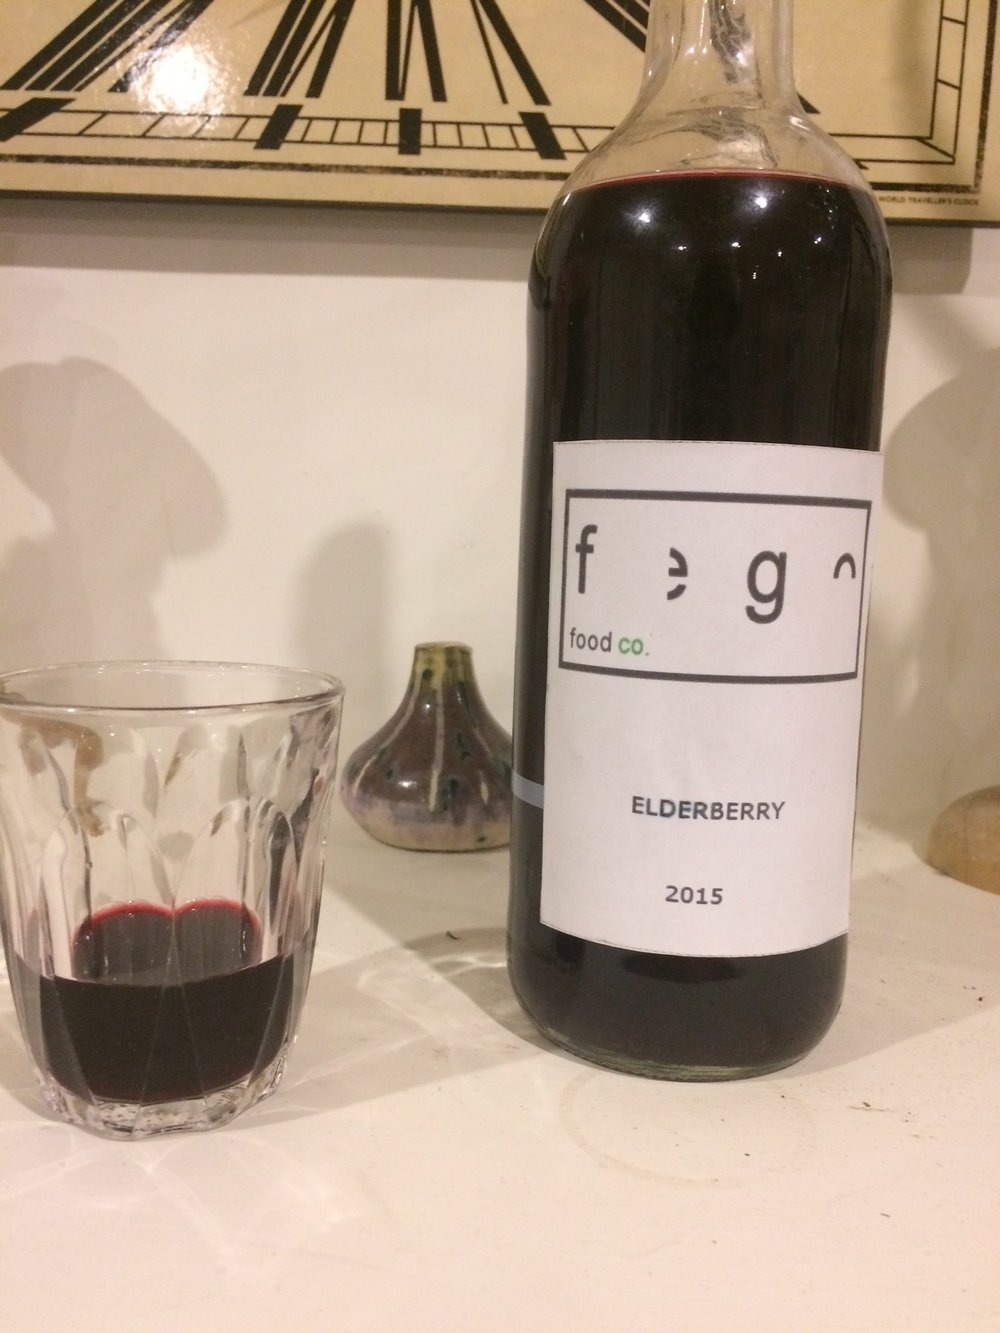 Fego Food Co. 2015 Elderberry wine